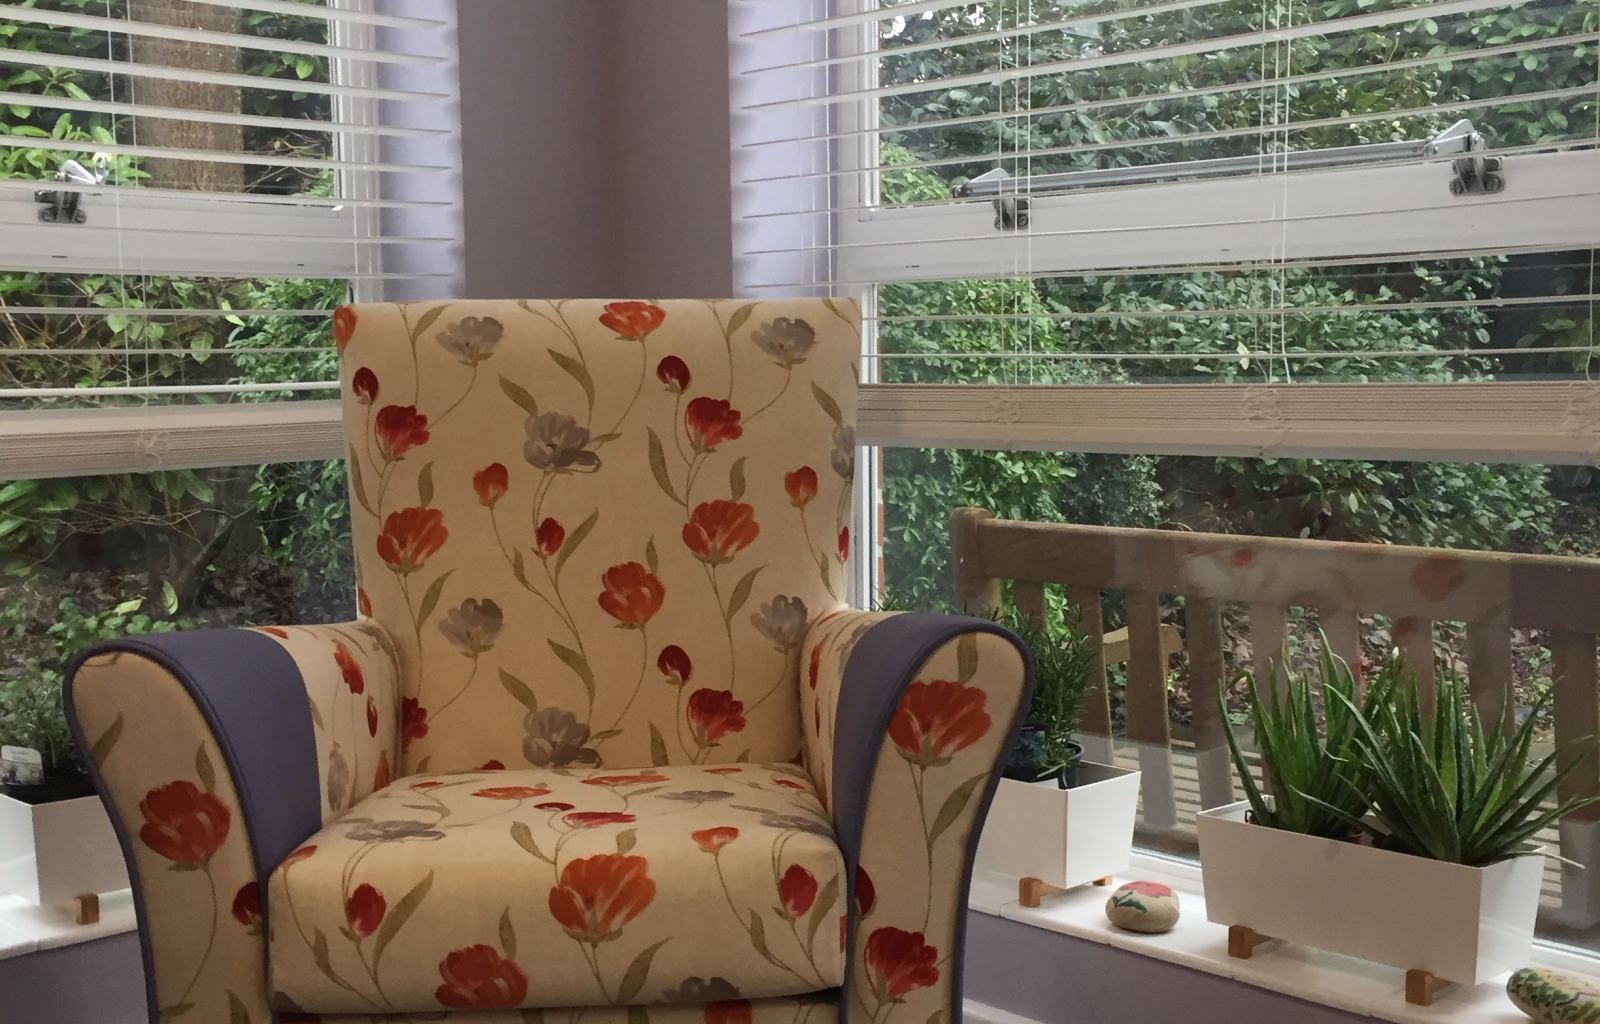 Carehome-pattern-upholstery-furniture-venetia-blinds